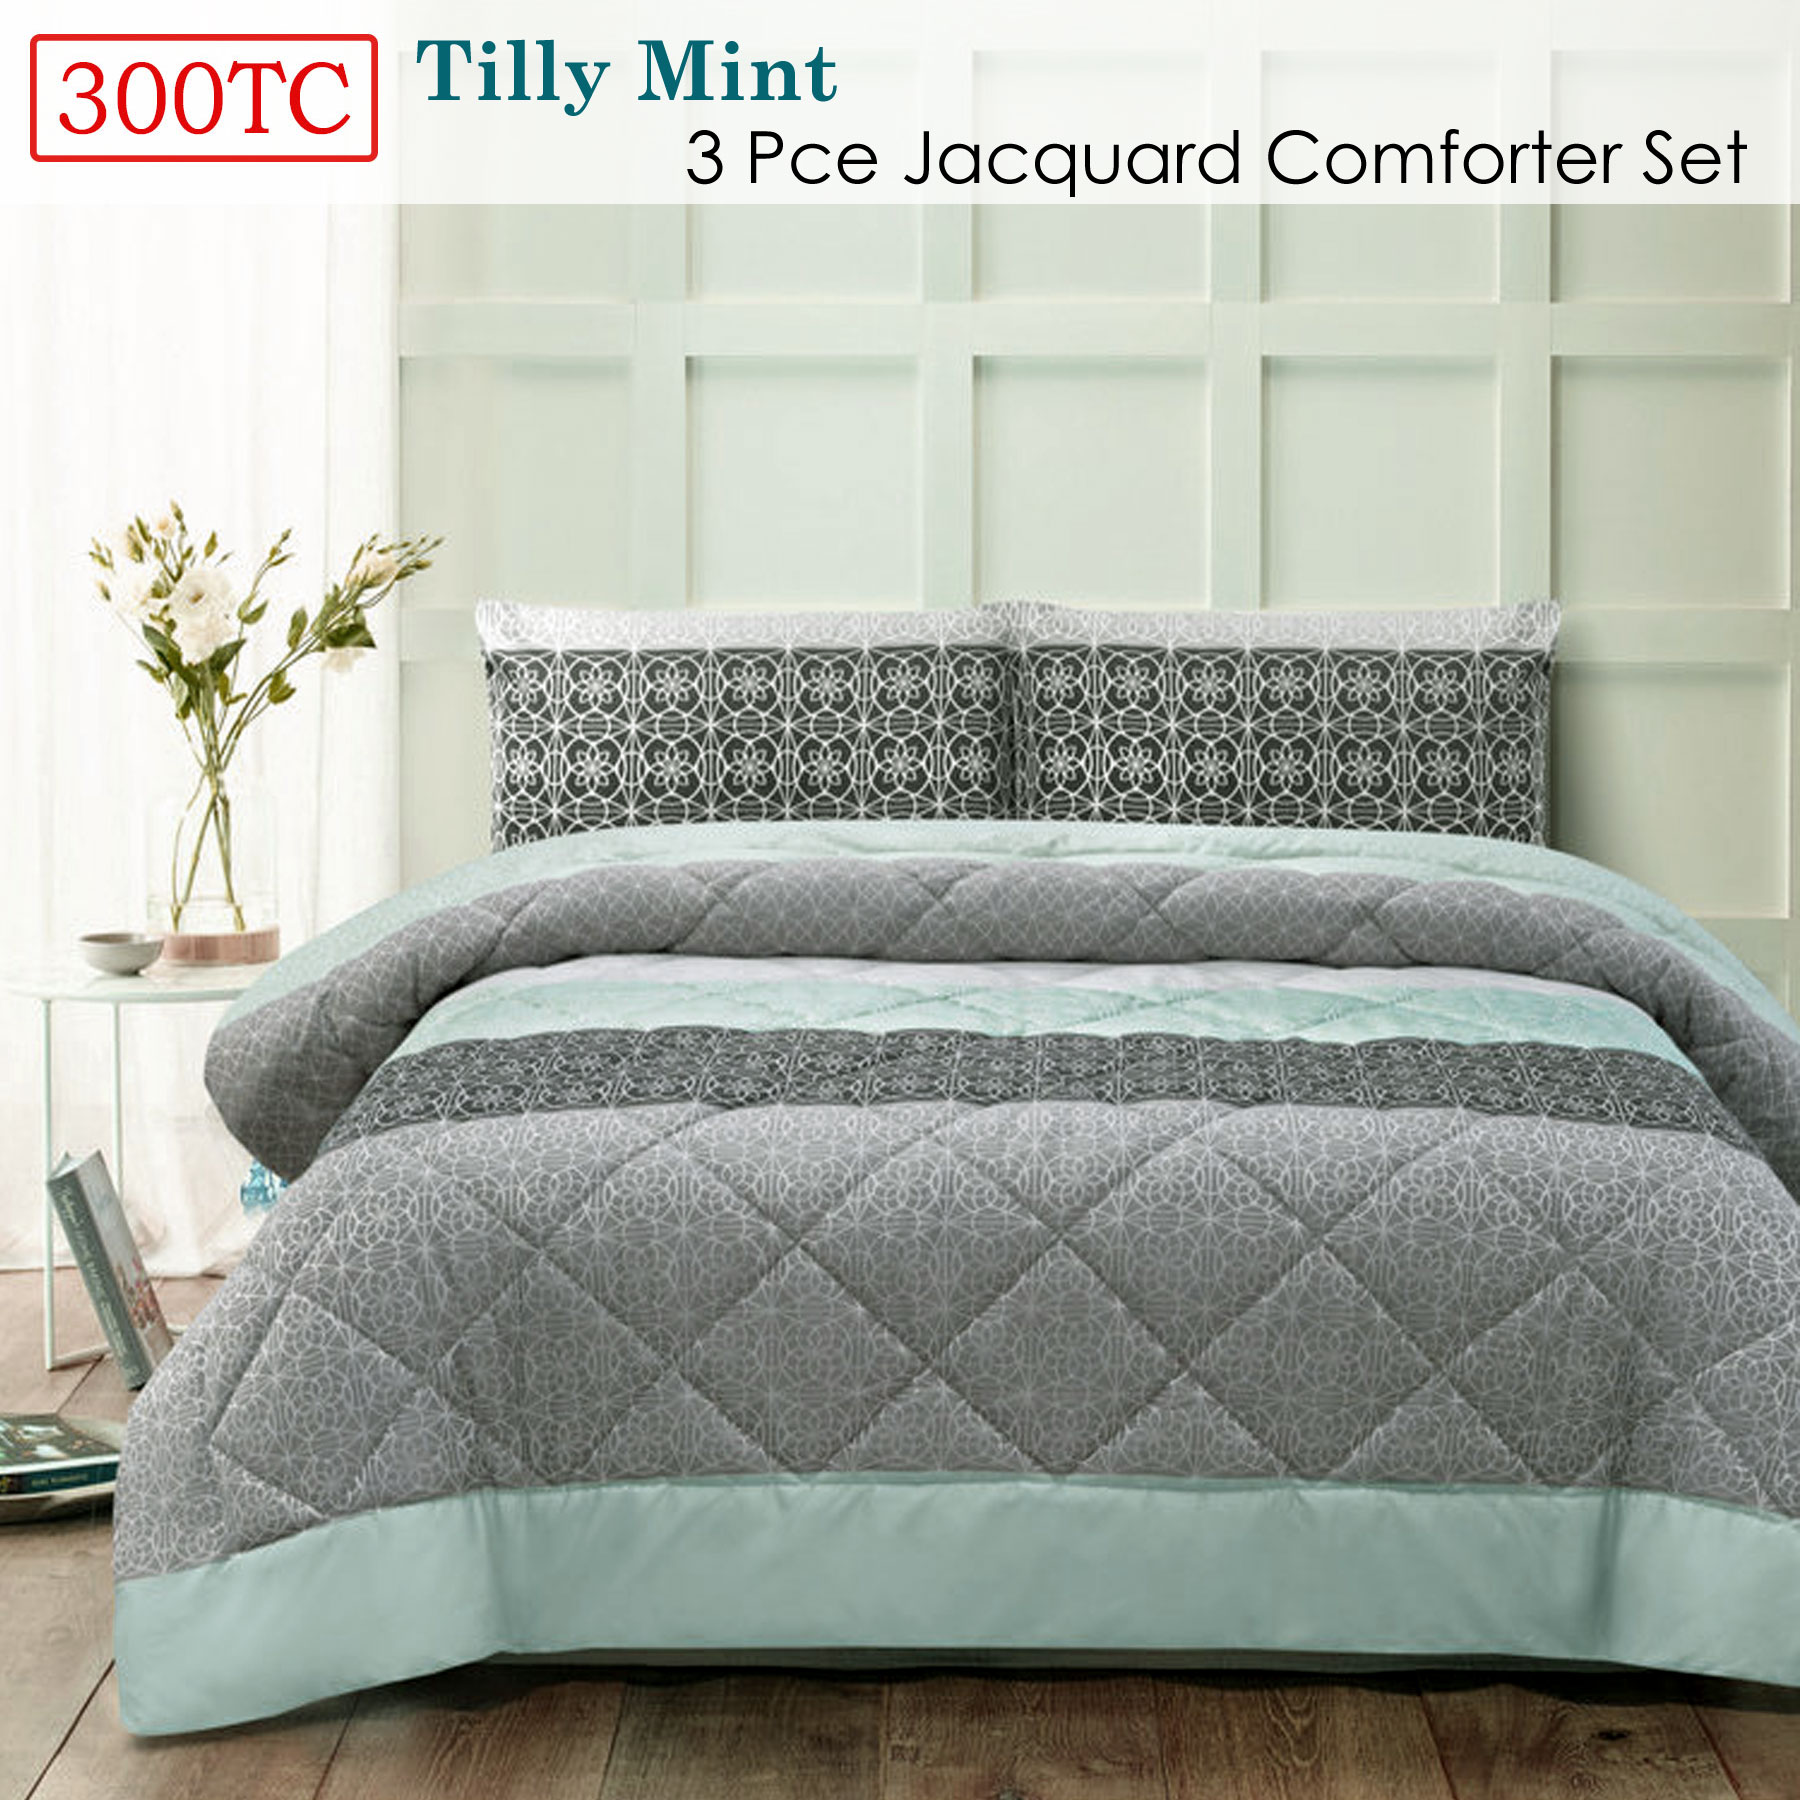 3 Pce 300TC Alexis Grey Jacquard Comforter Set by Accessorize QUEEN KING